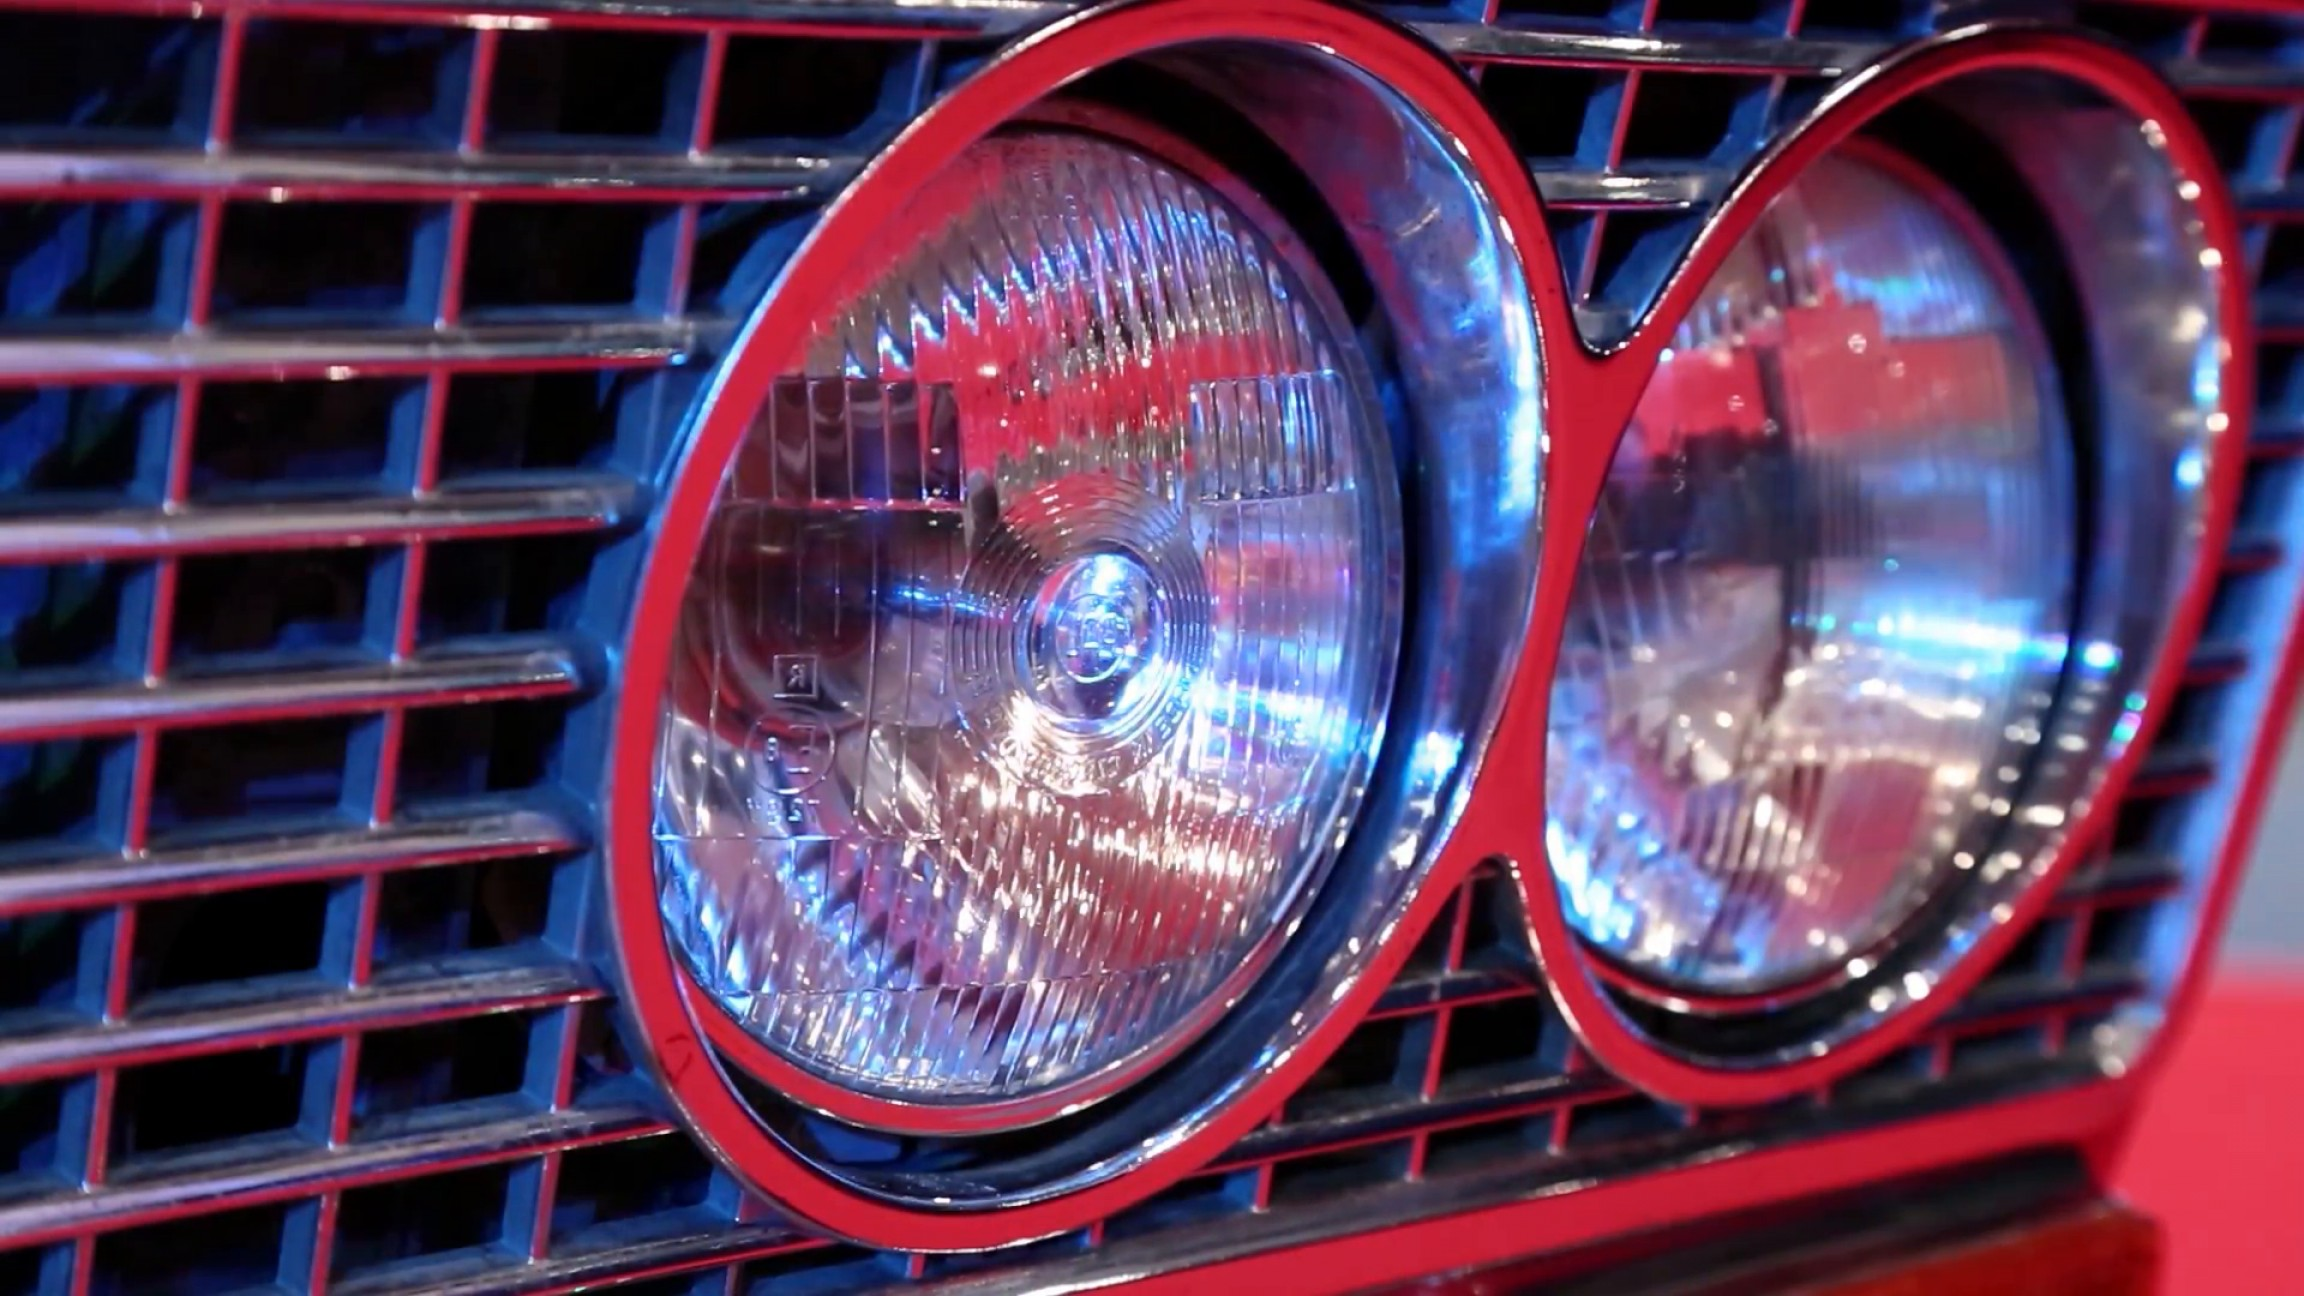 Vector Round Headlight: Stylish Round Headlights Of A Retro Car Vdljiigtgijvvpwou